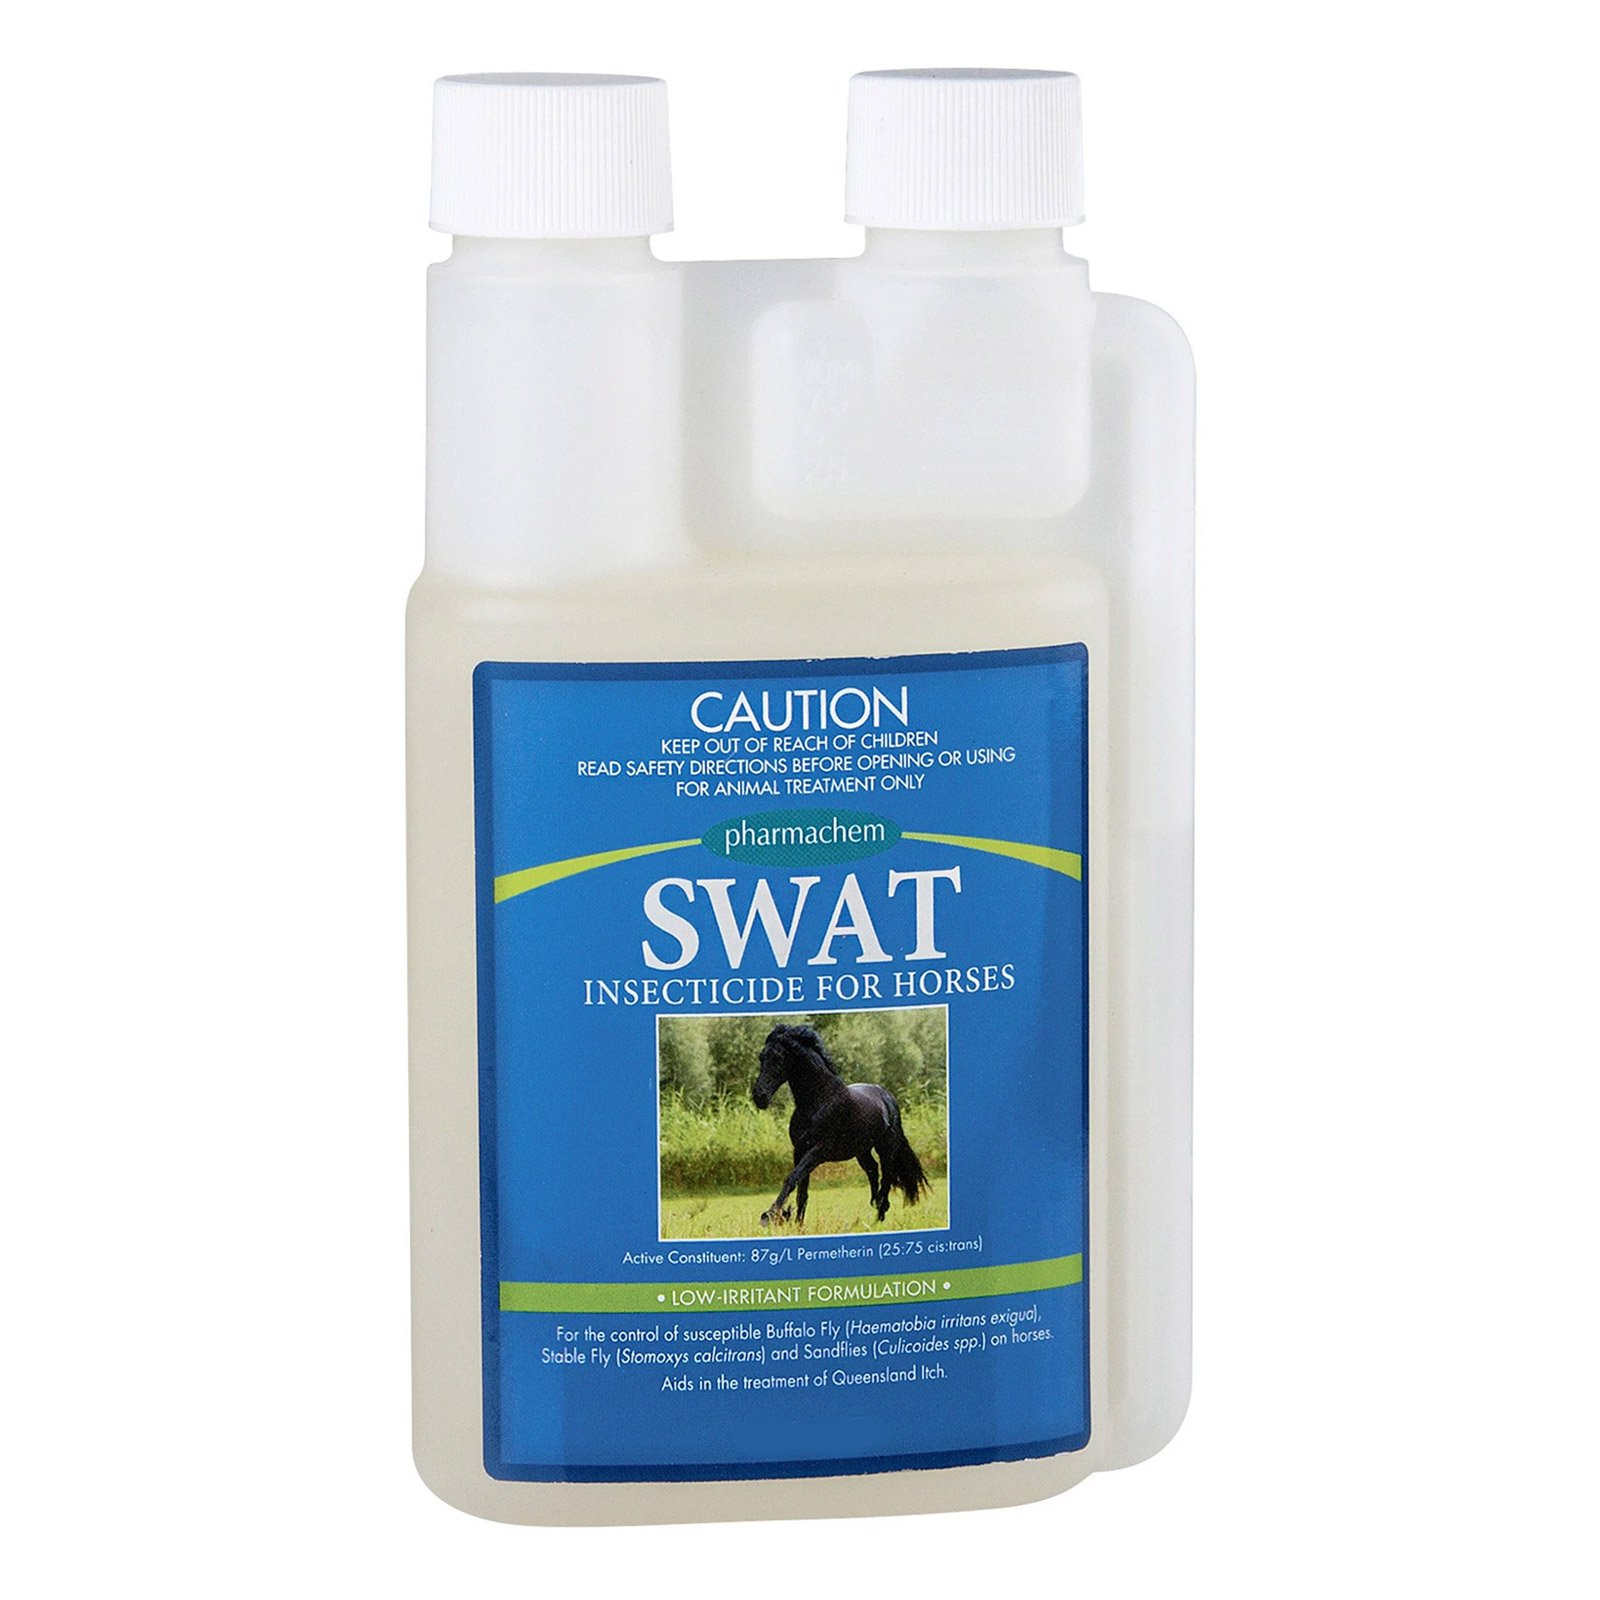 130949099399753903-swat-insecticide-for-horses.jpg